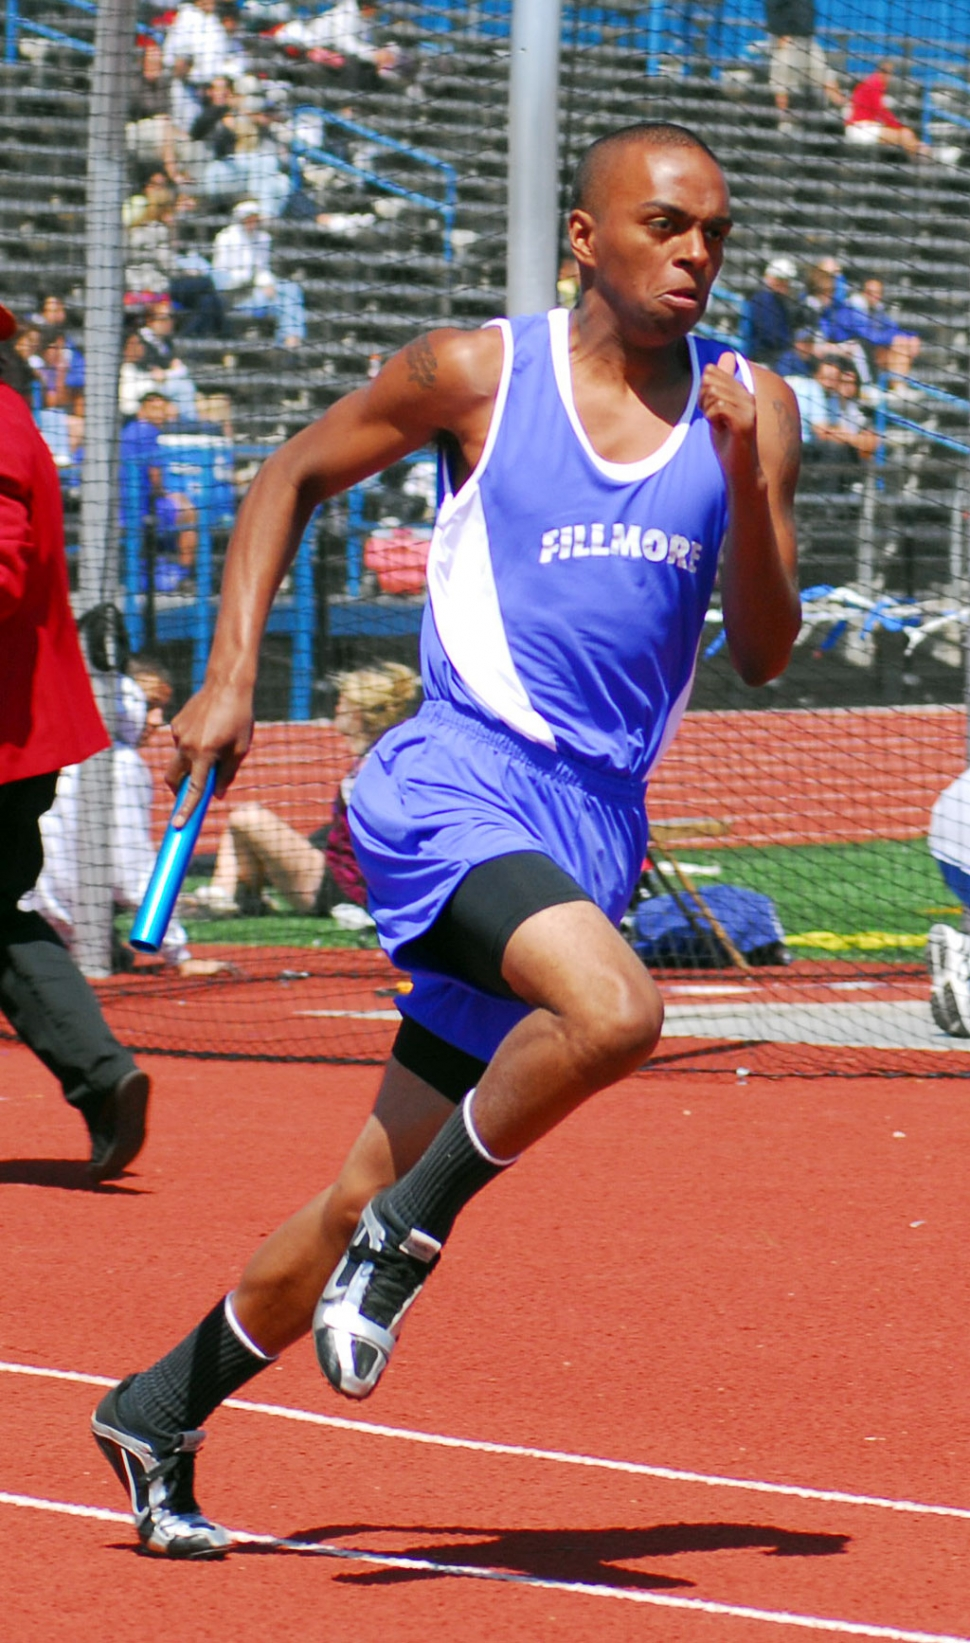 Major Lee competed in the Citrus Valley Relays this past Saturday.